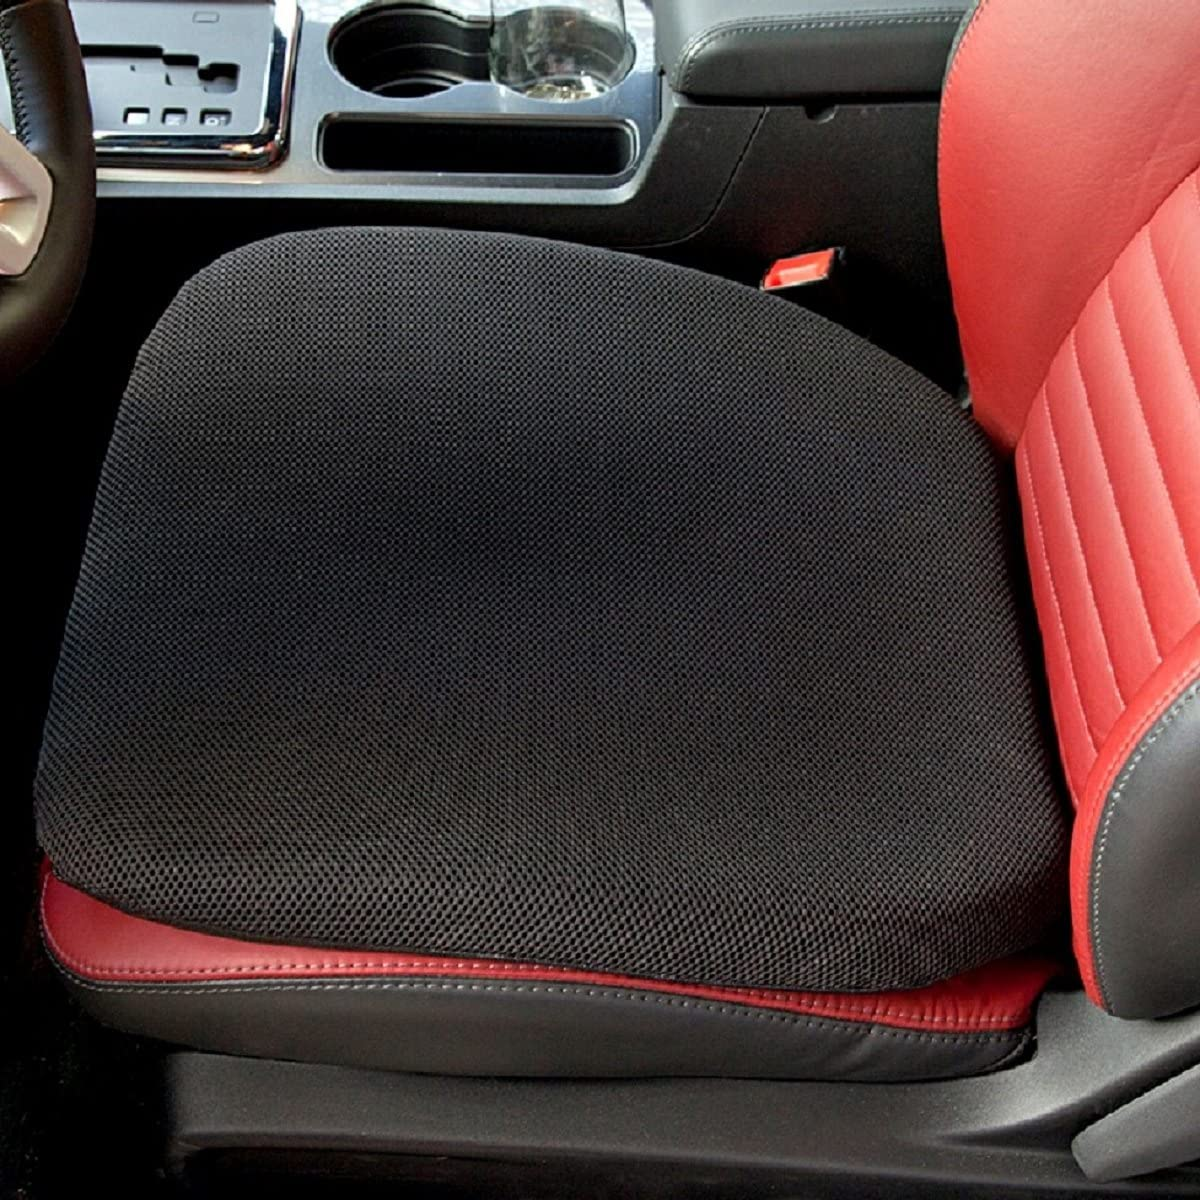 CONFORMAX Airmax Gel Car/Truck Seat Cushion